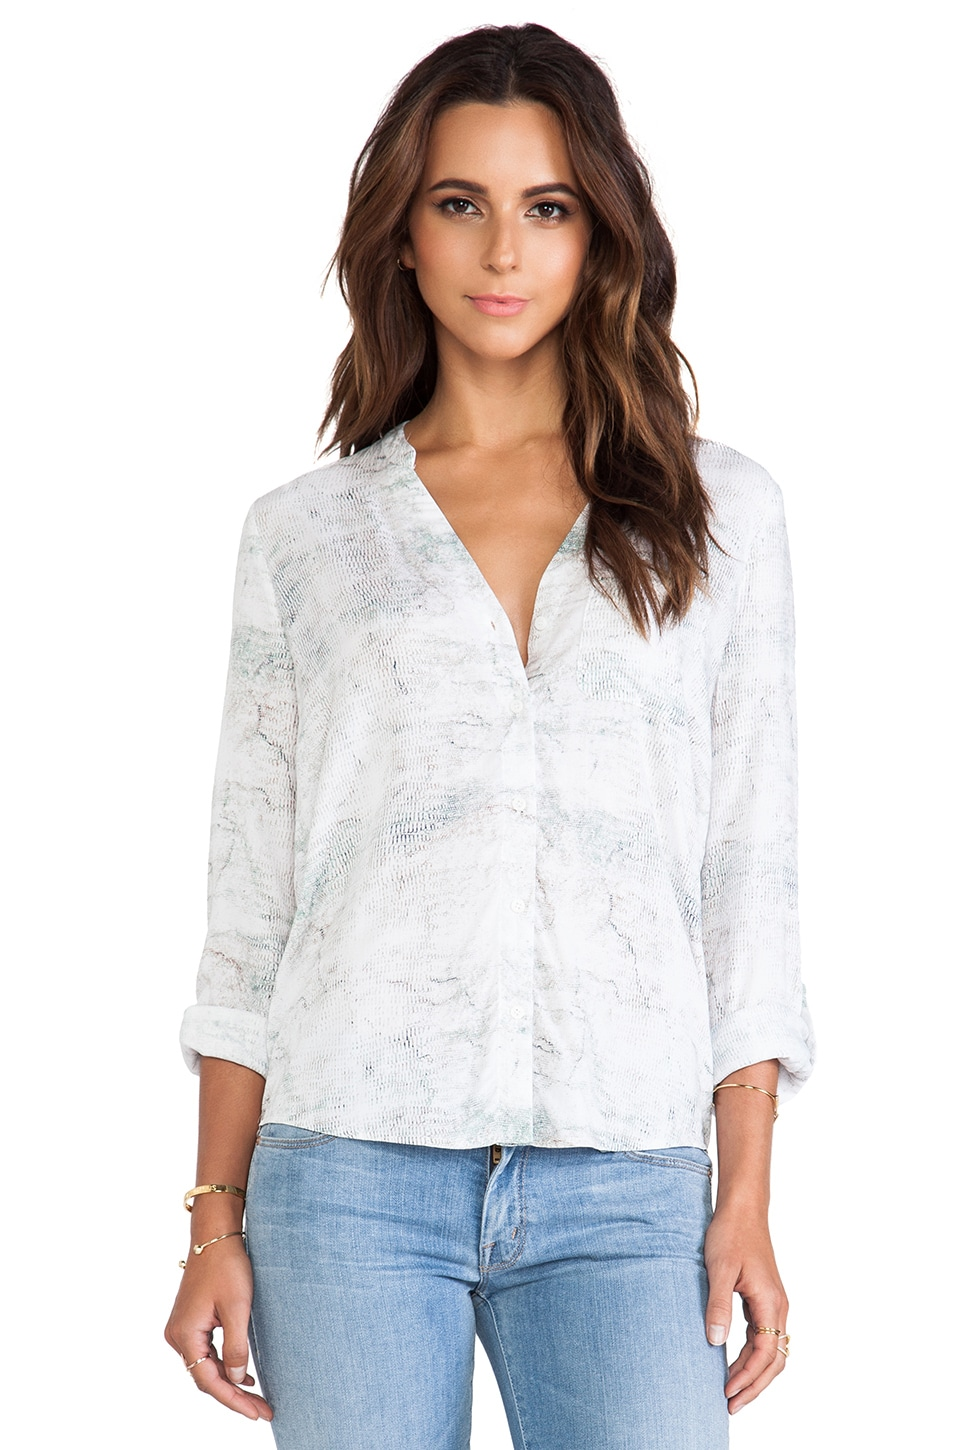 Soft Joie Anabella B Top in Porcelain